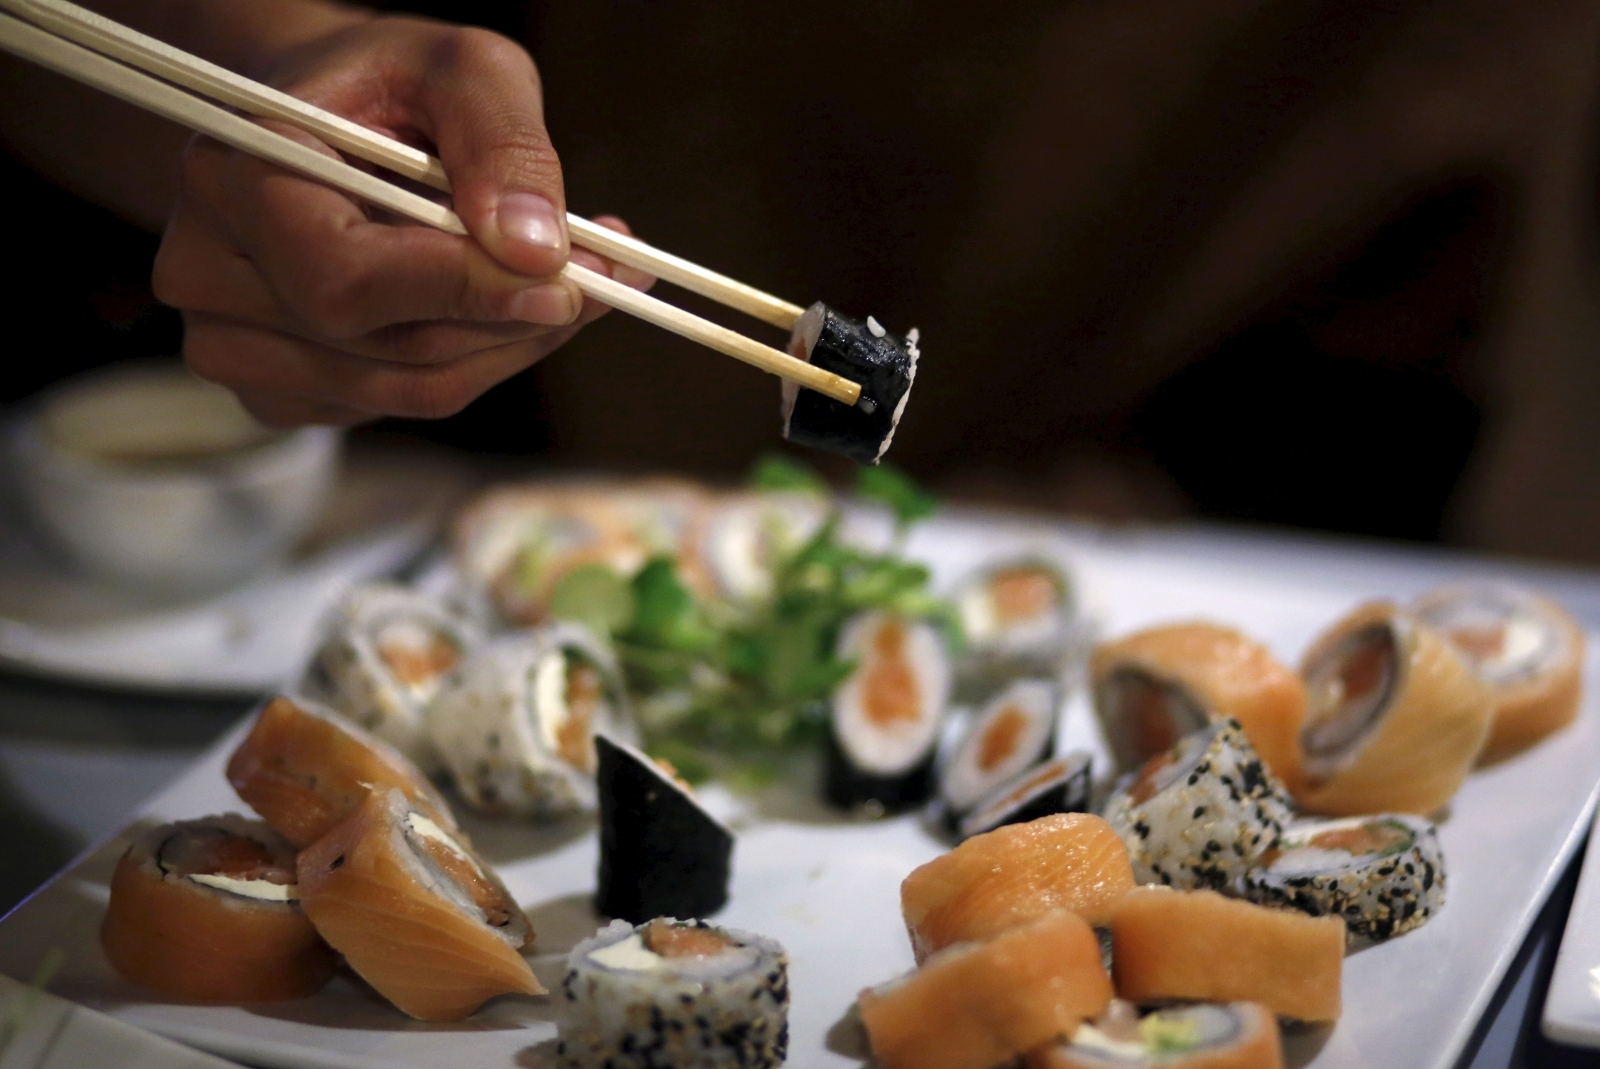 A 5-foot long tapeworm pulls out from a sushi lover's body